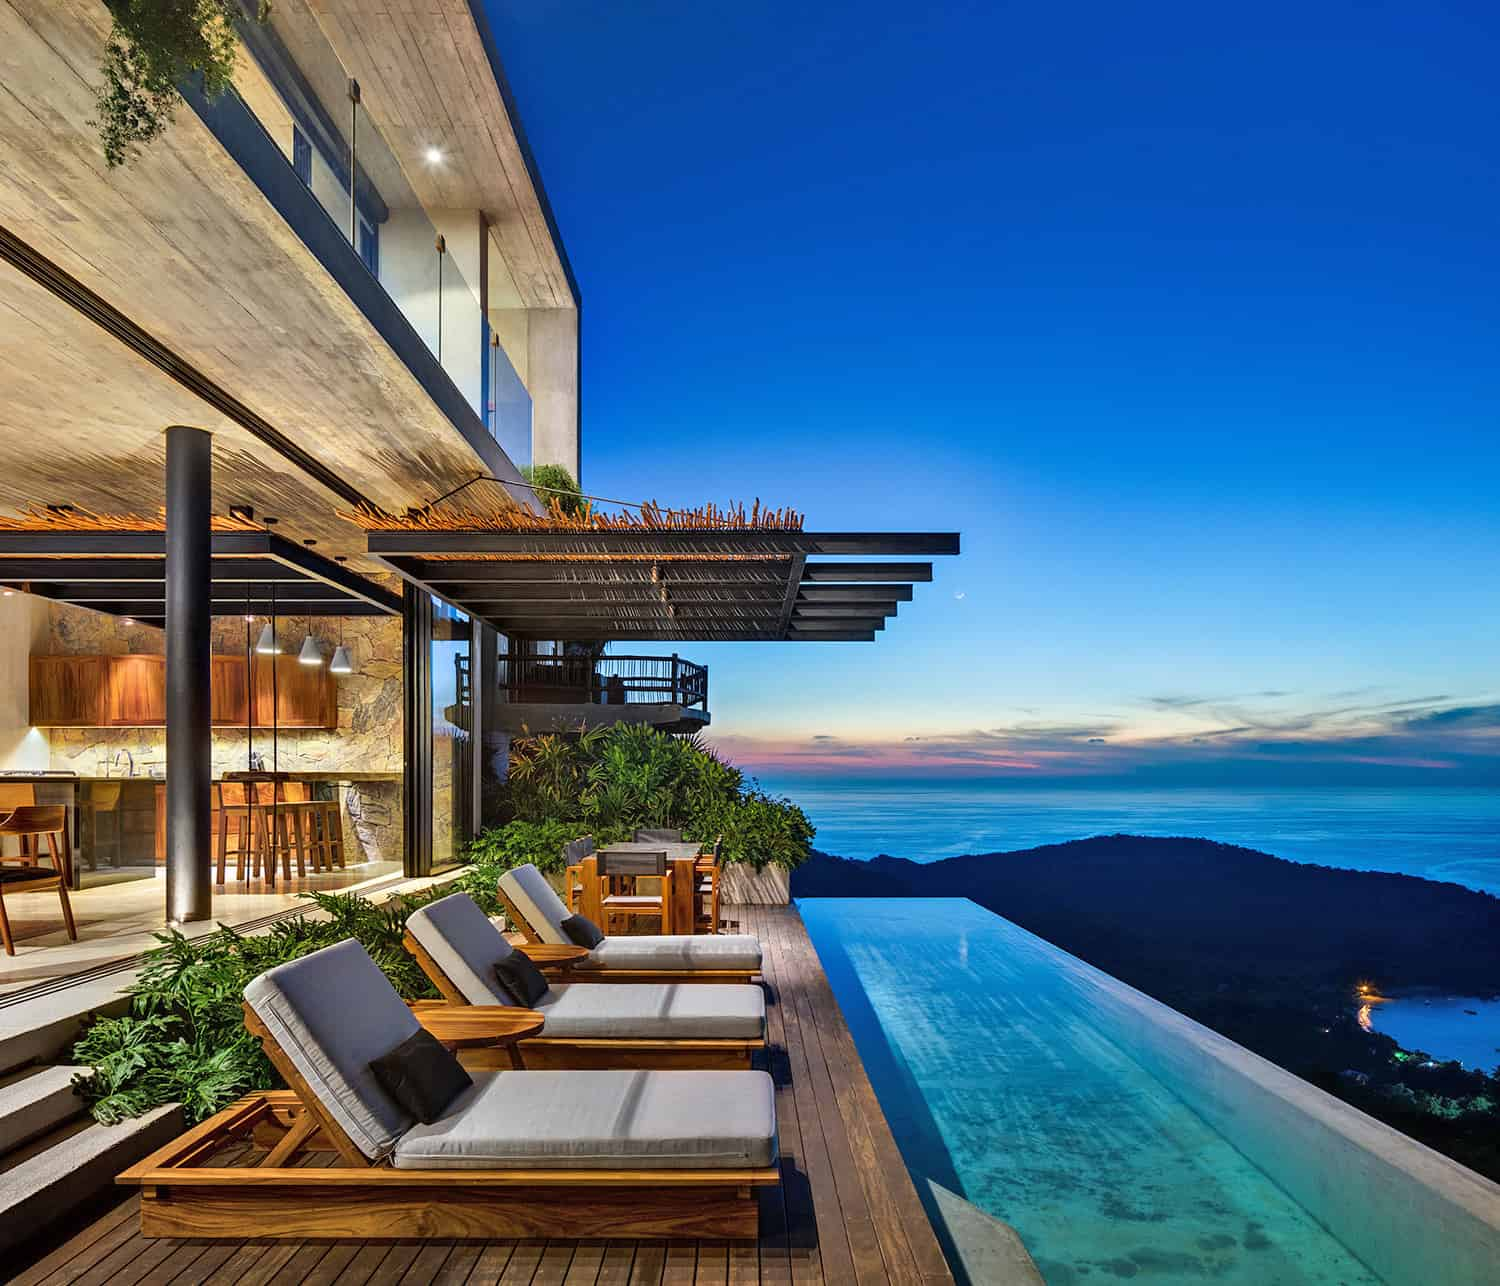 Astounding tropical modern retreat perched over Mexico?s Pacific Coast